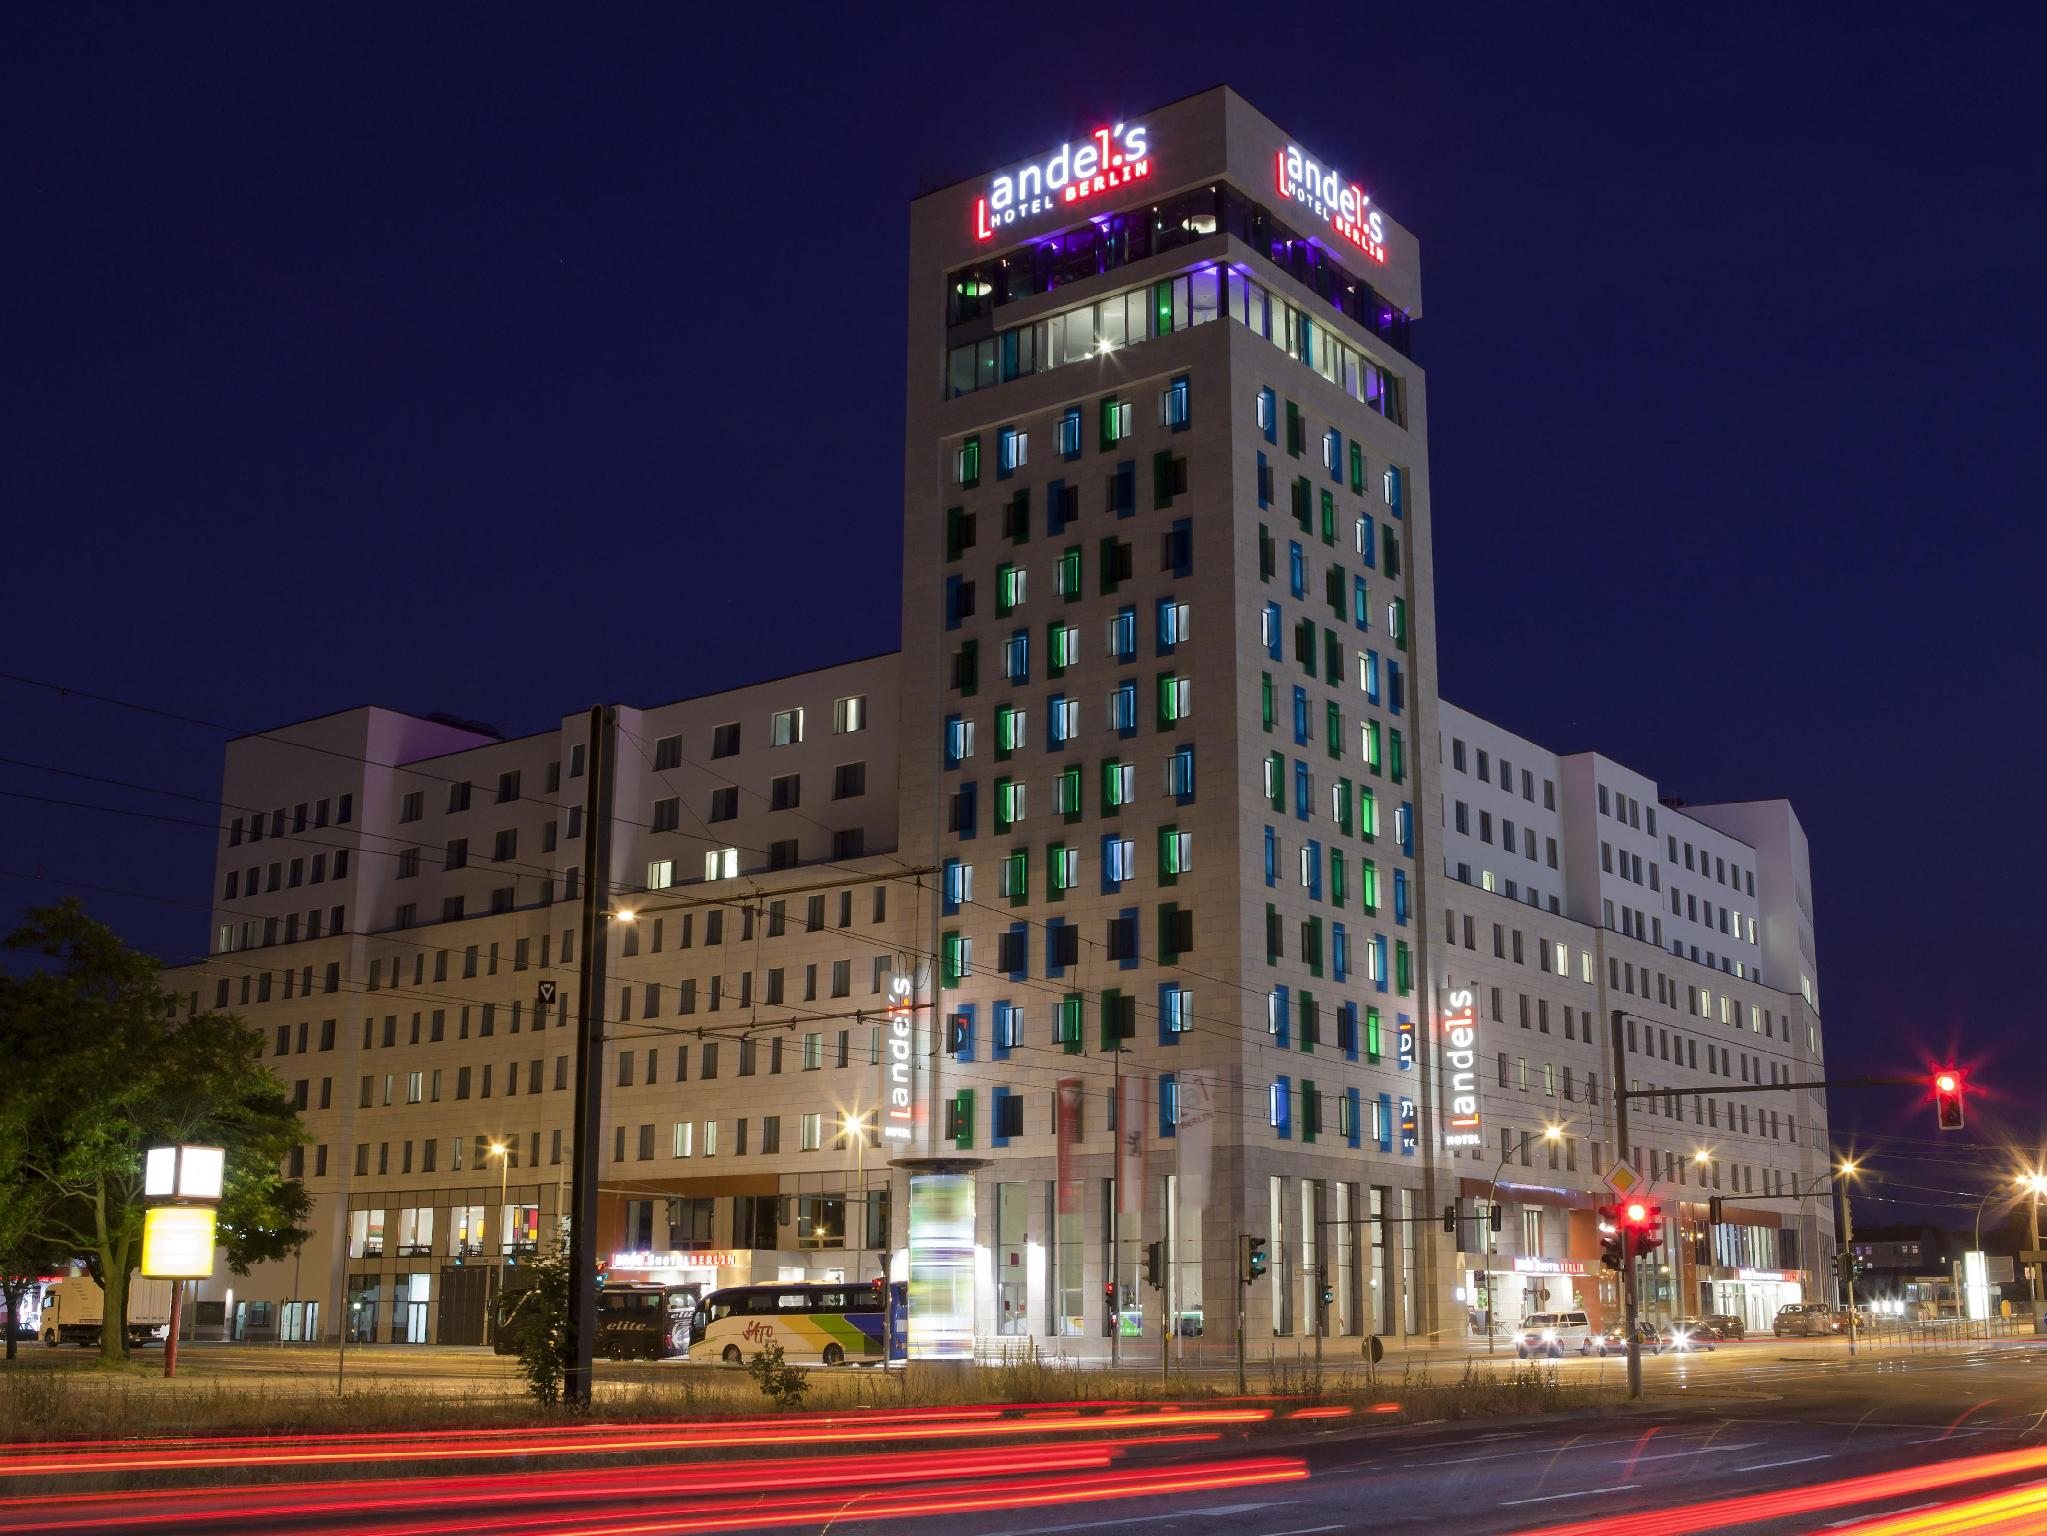 andel's Hotel Berlin, managed by Vienna International Hotels and Resorts Berlino